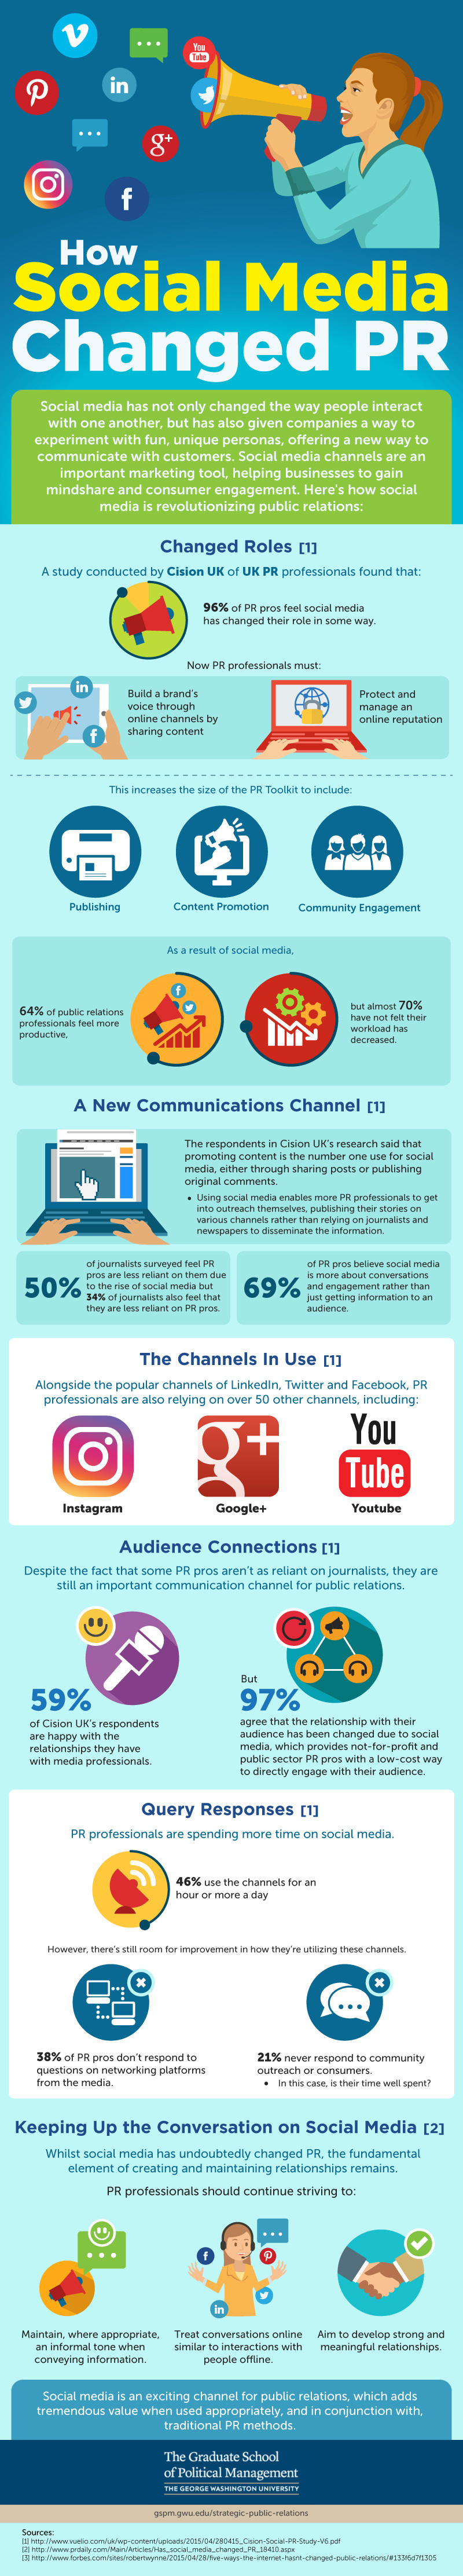 An infographic about social media and PR by The George Washington University's Strategic Public Relations program.